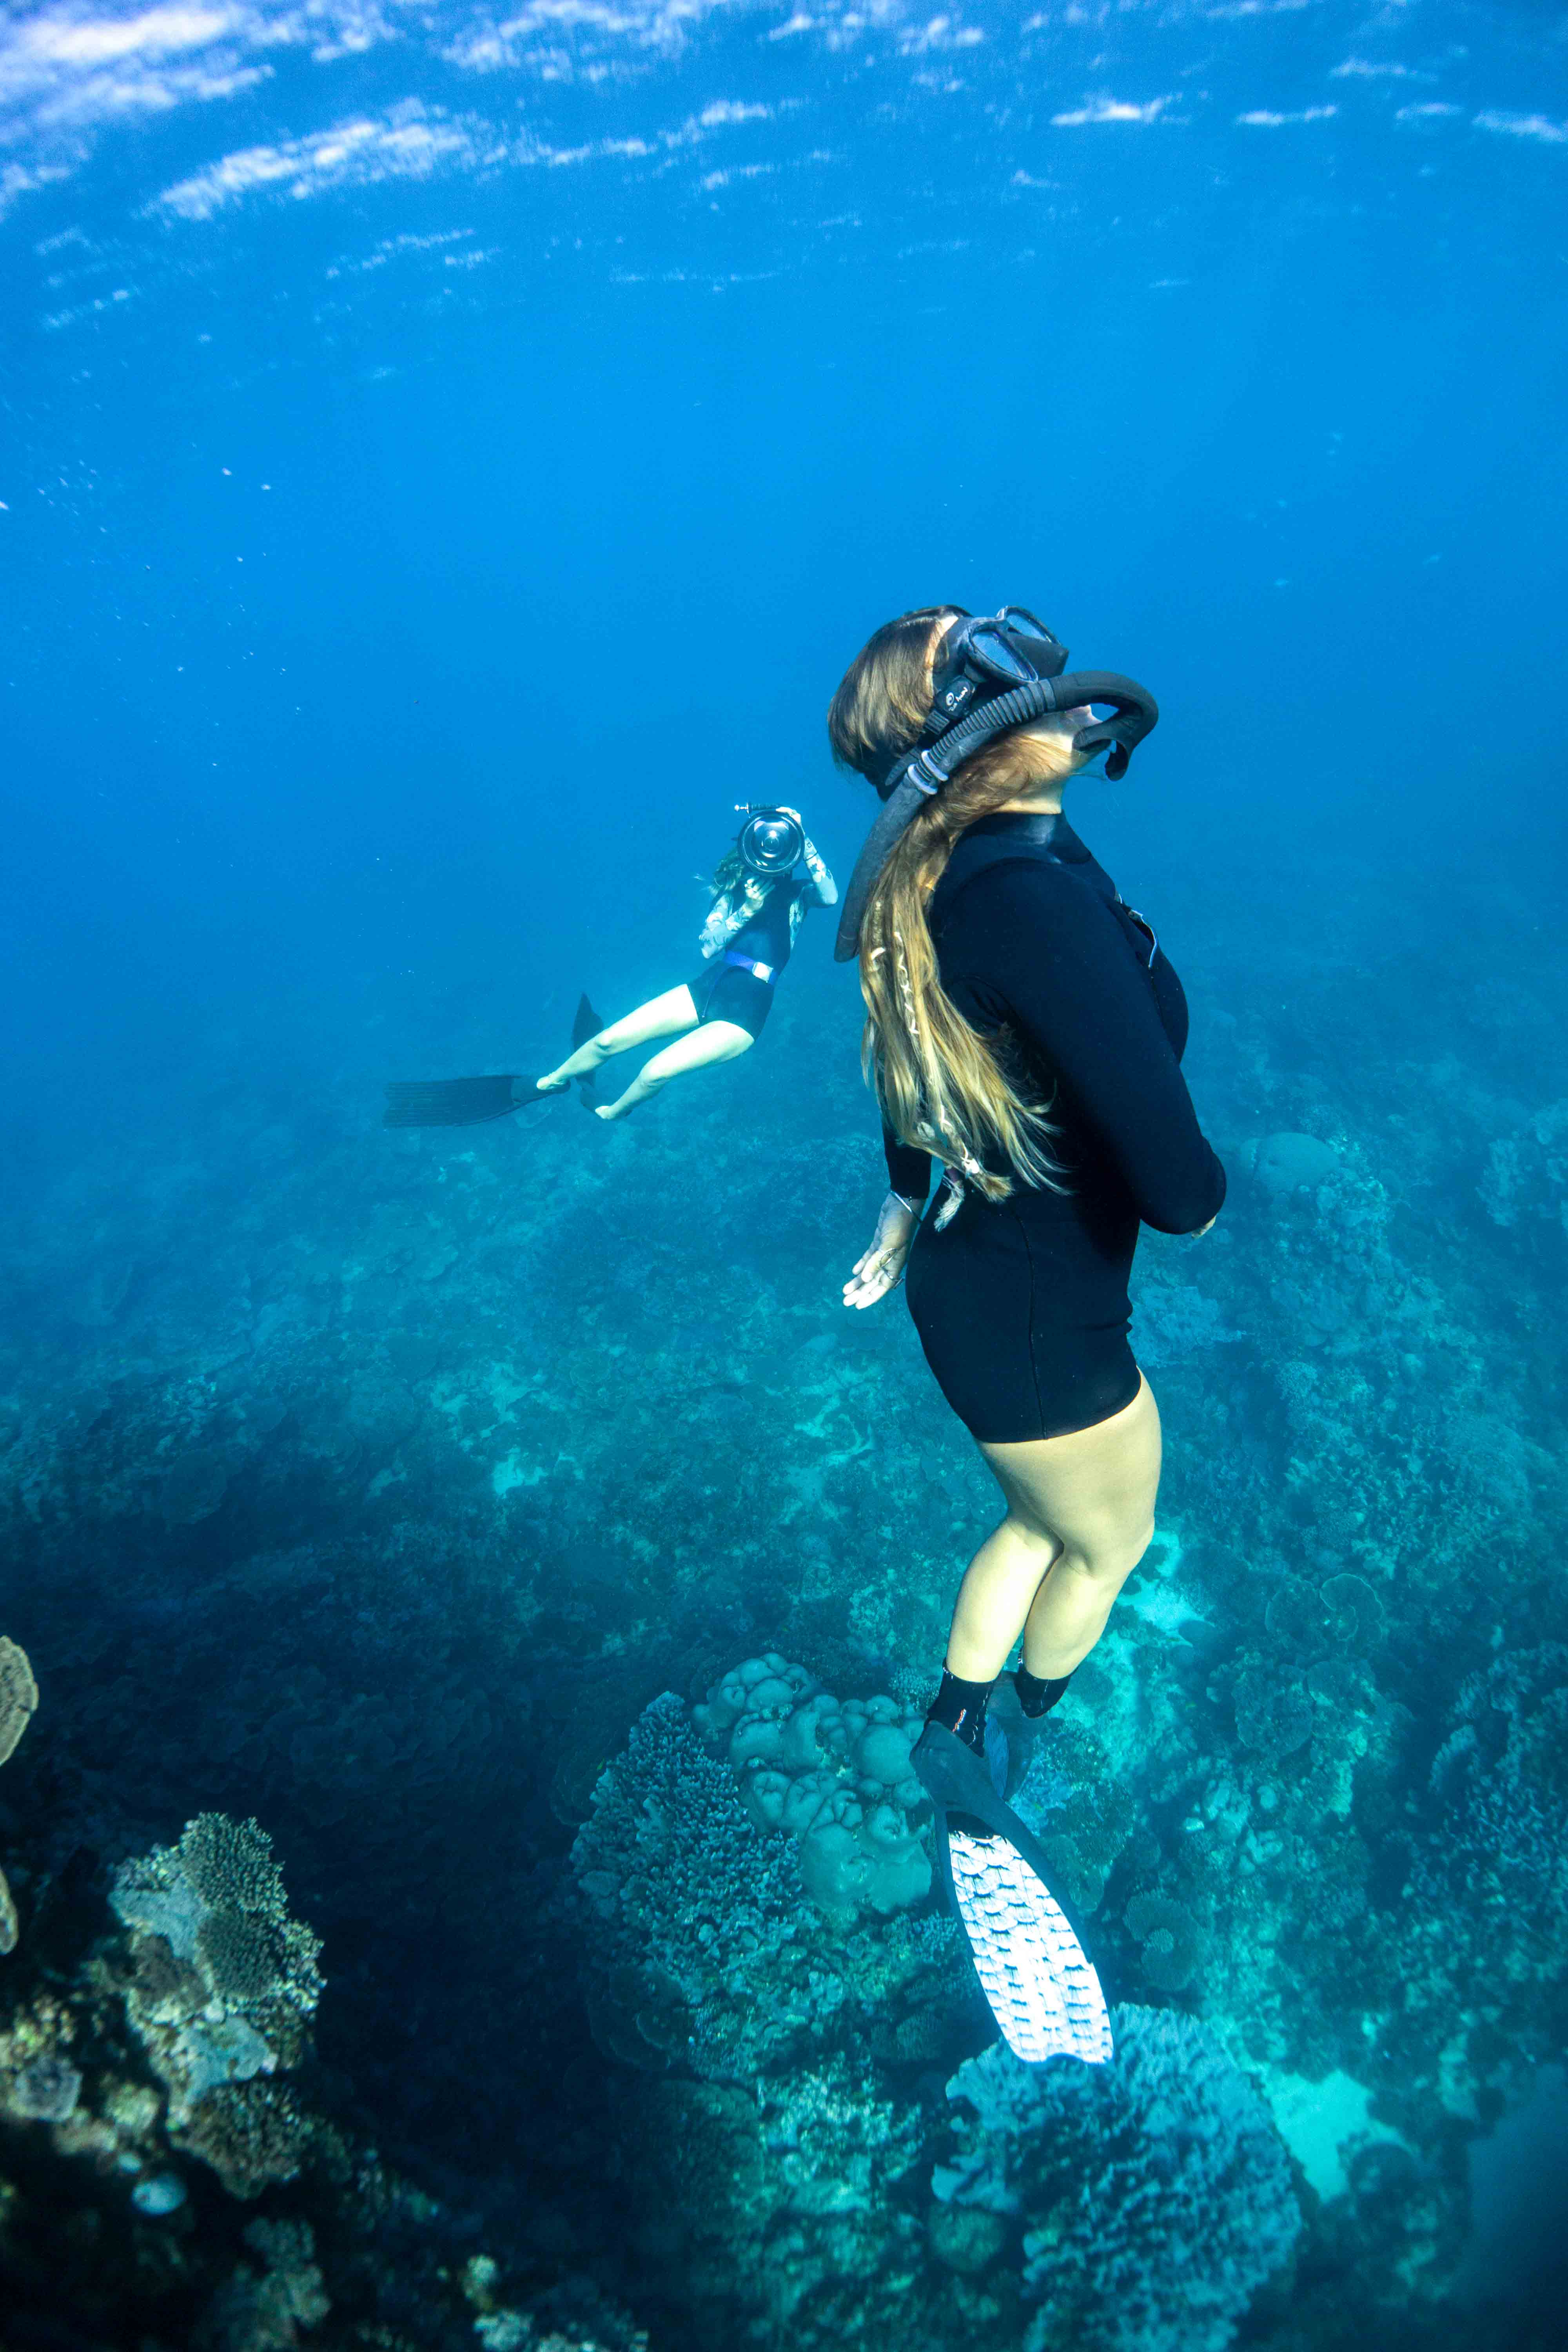 Girls enjoying freediving